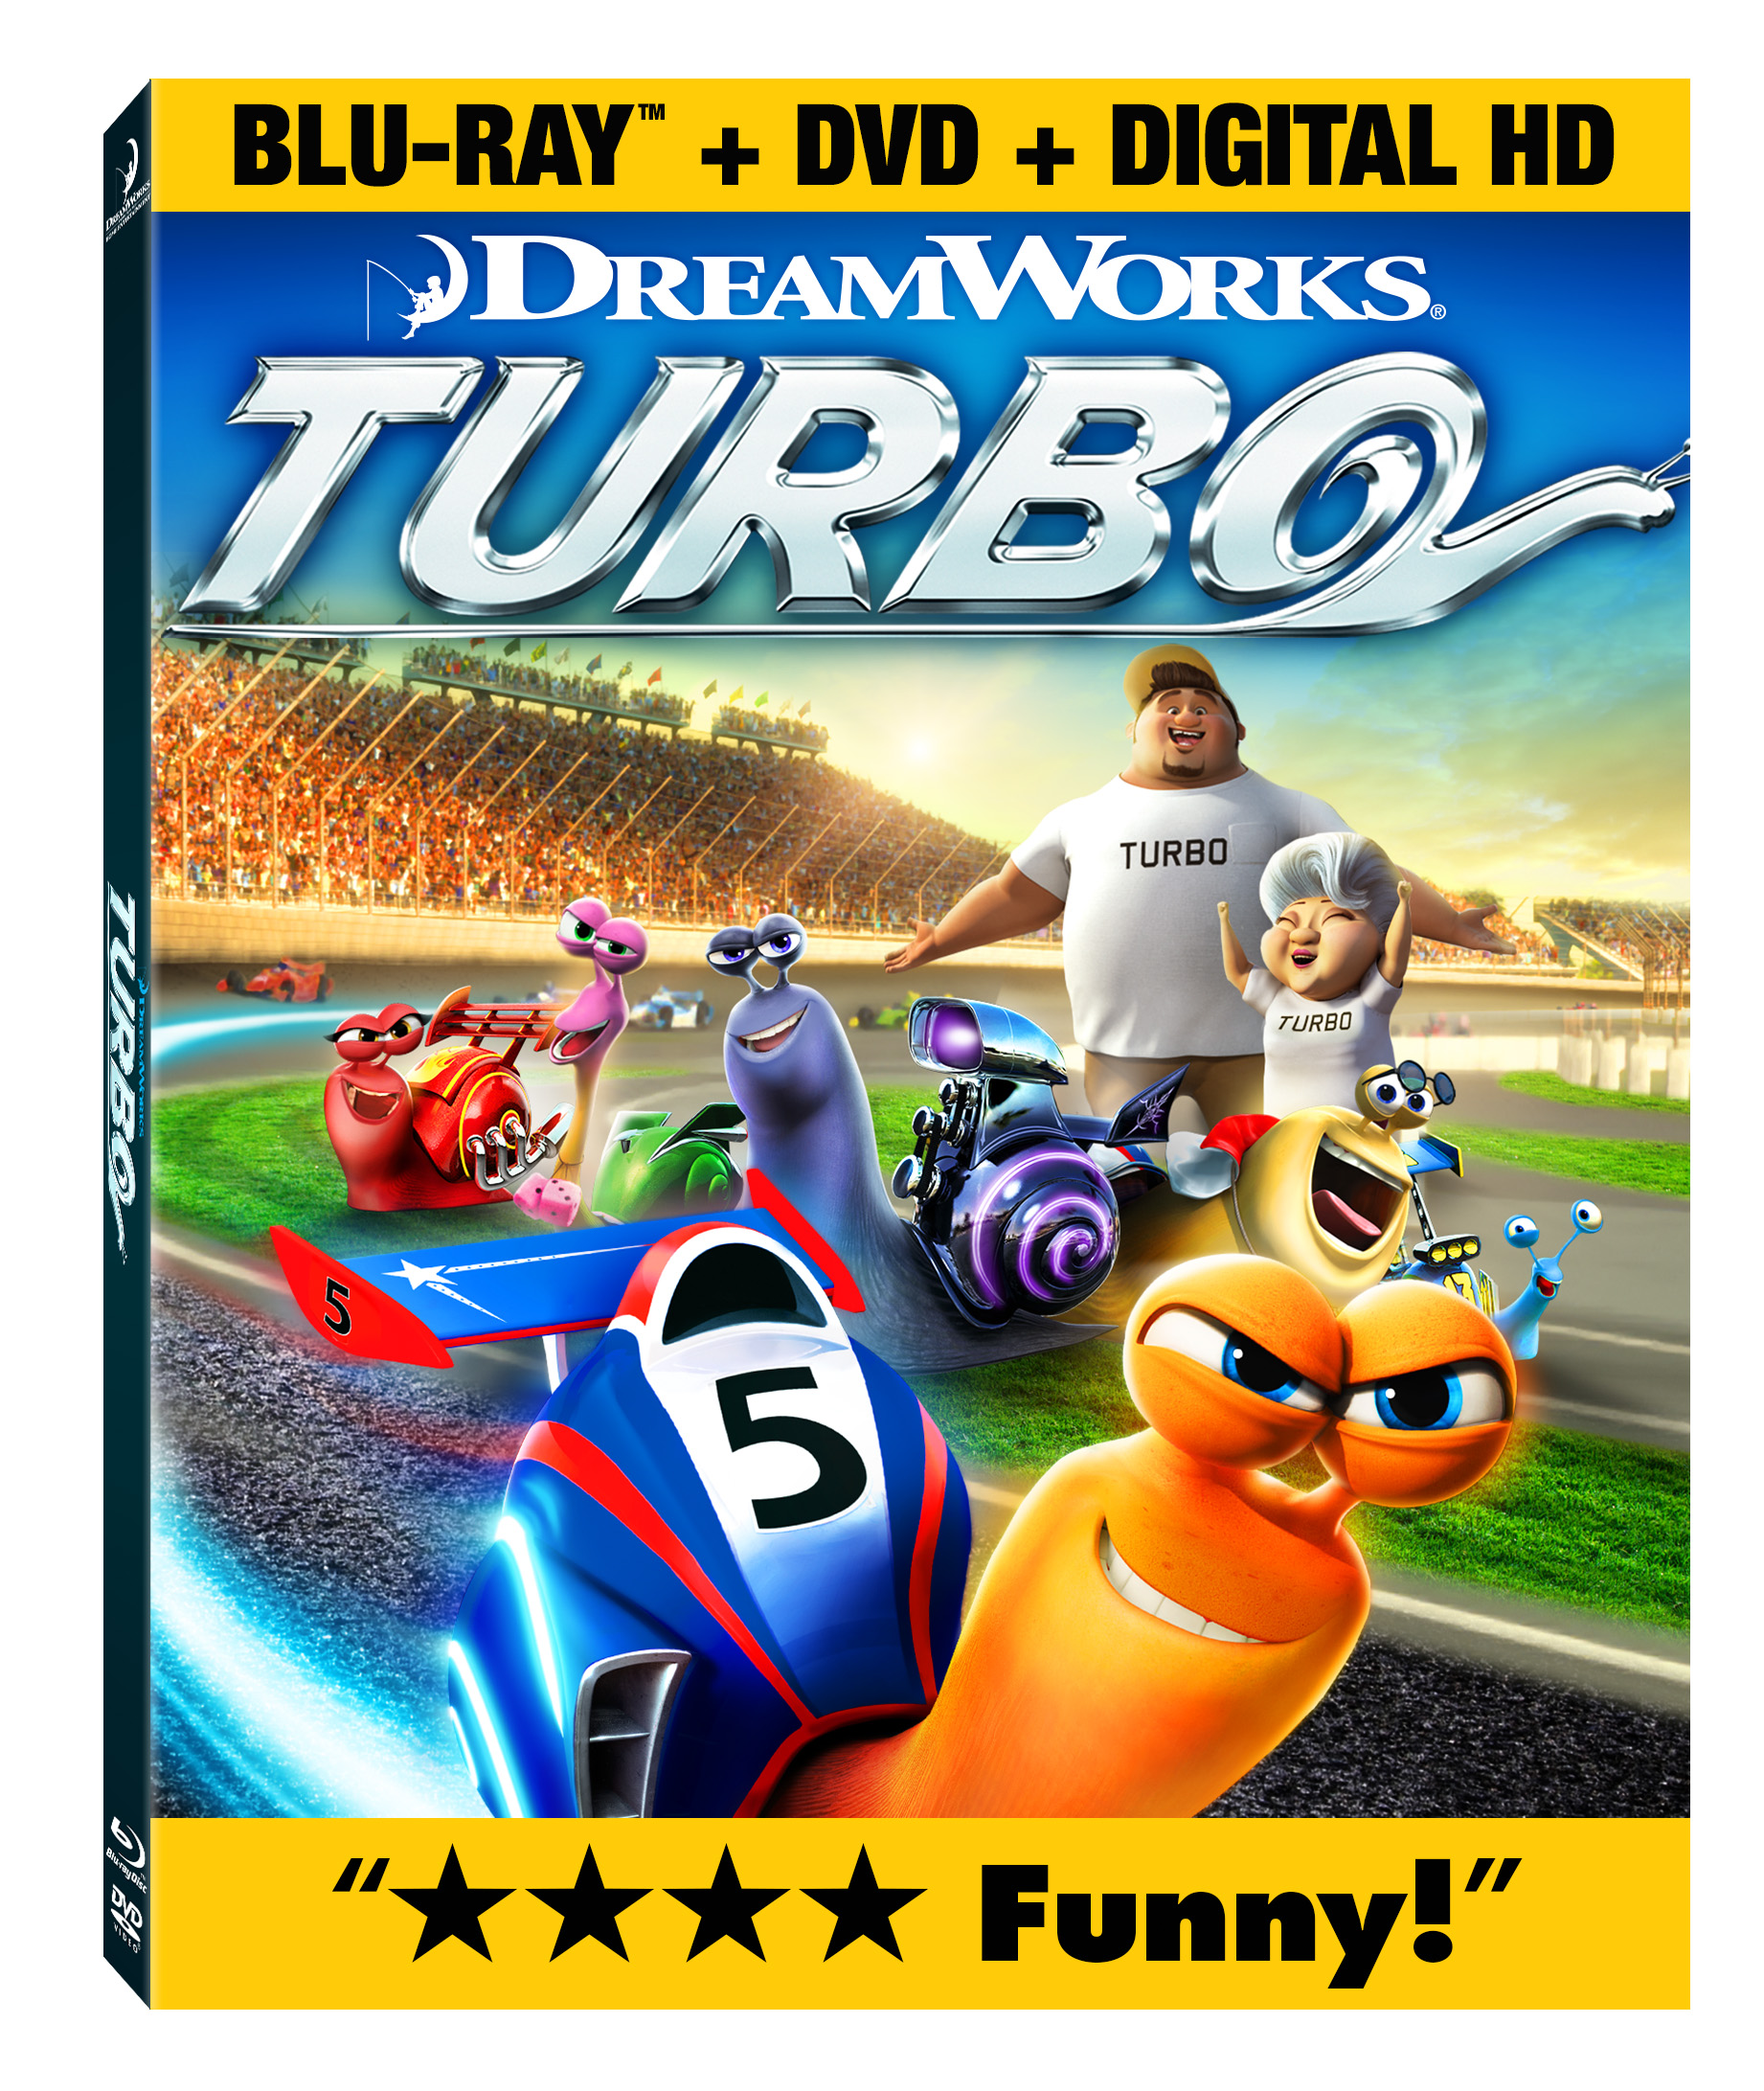 Turbo Blu-ray